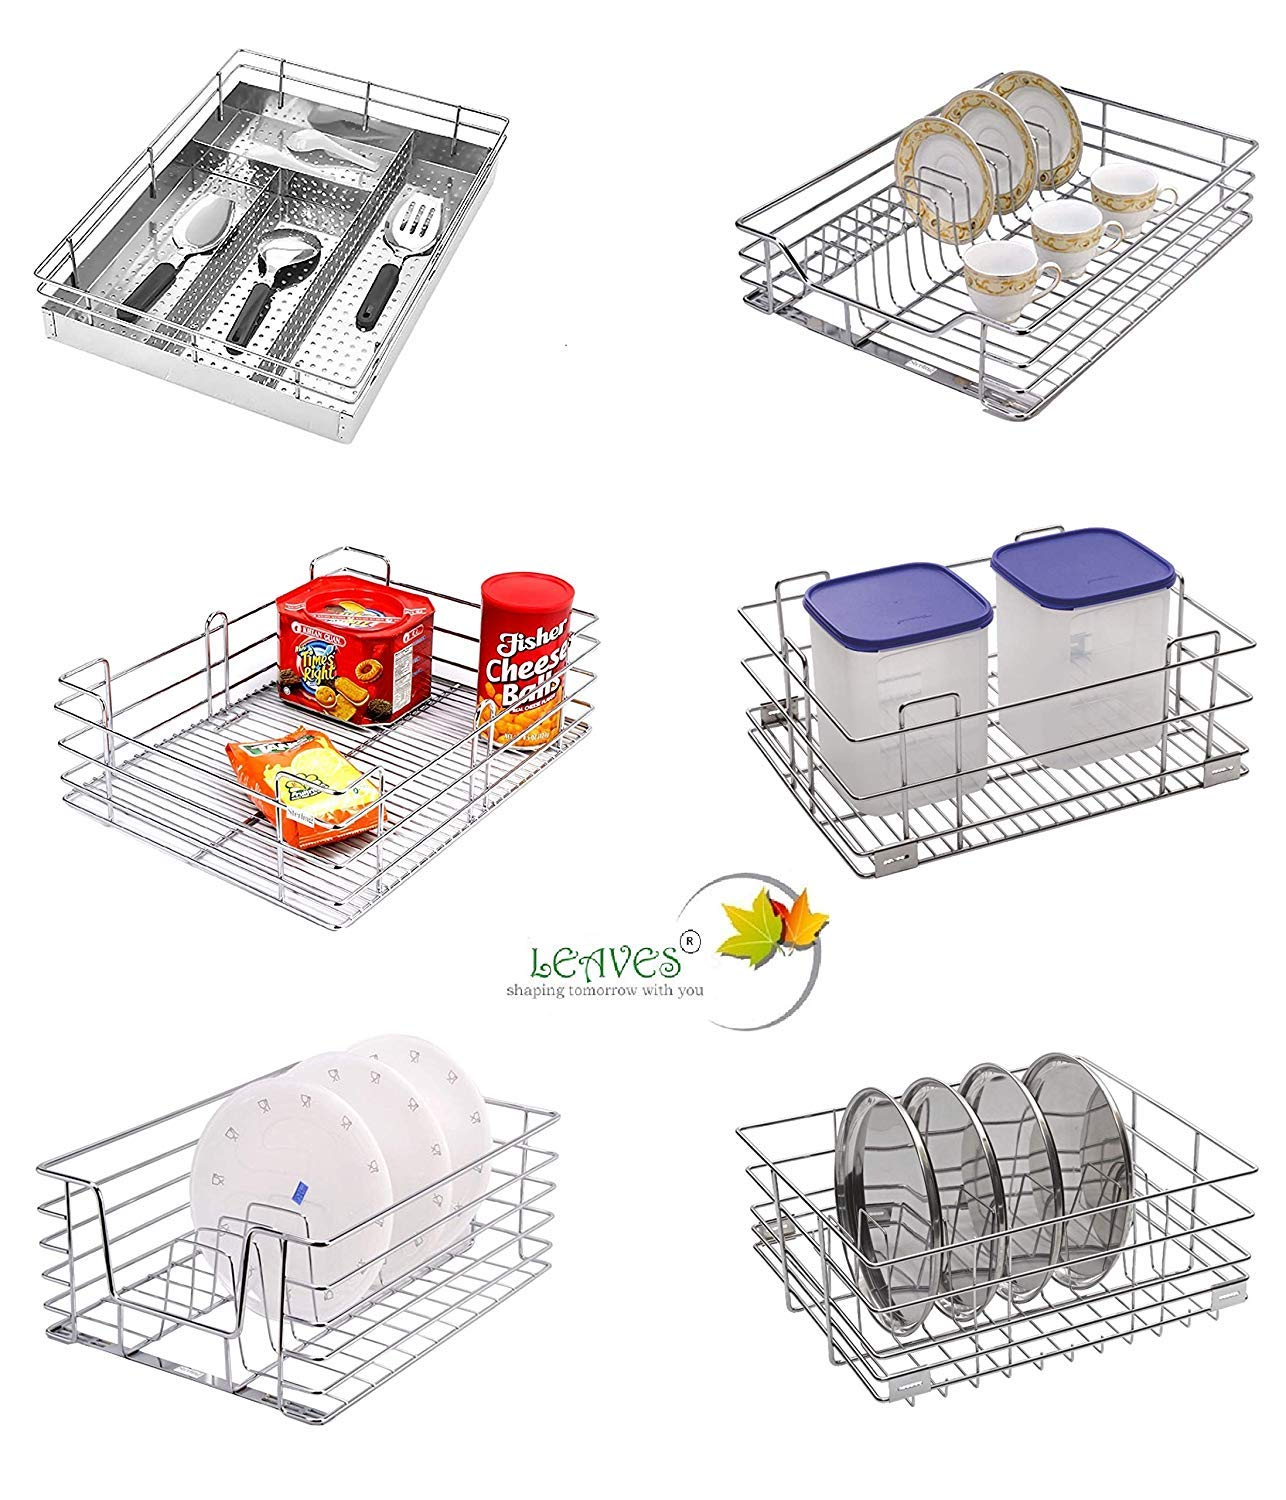 Buy Leaves Set Of 6 Modular Kitchen Stainless Steel Basket Pull Out Drawers Shelves Cabinet Rack Basket Tray For Multipurpose Utensils Container Shelf Organiser 15 X 20 Inches Online At Low Prices